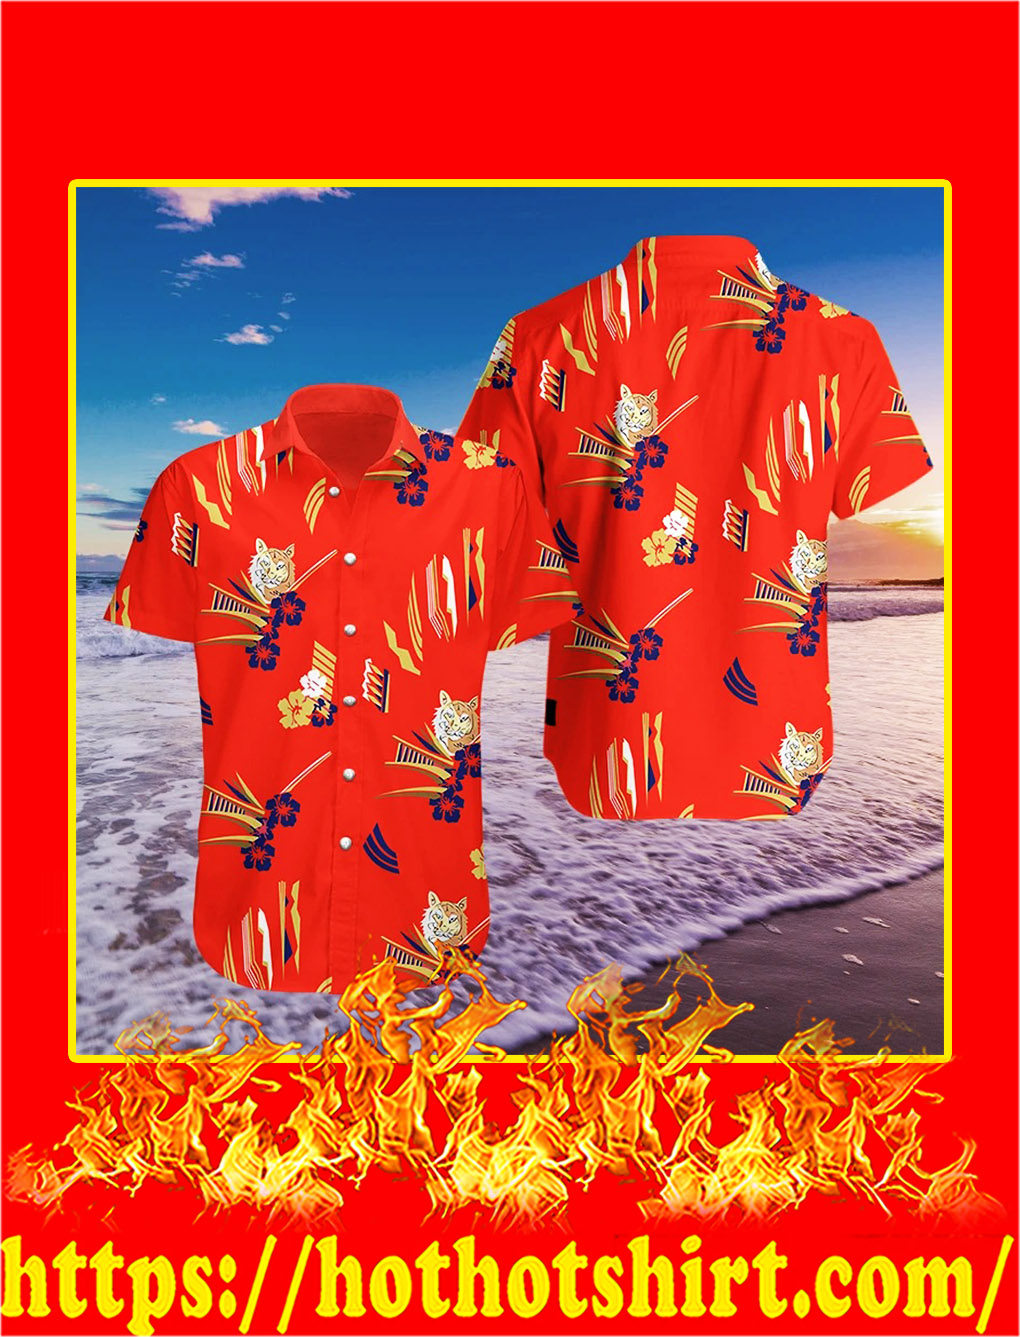 Tony Montana The godfather hawaiian shirt- pic 1